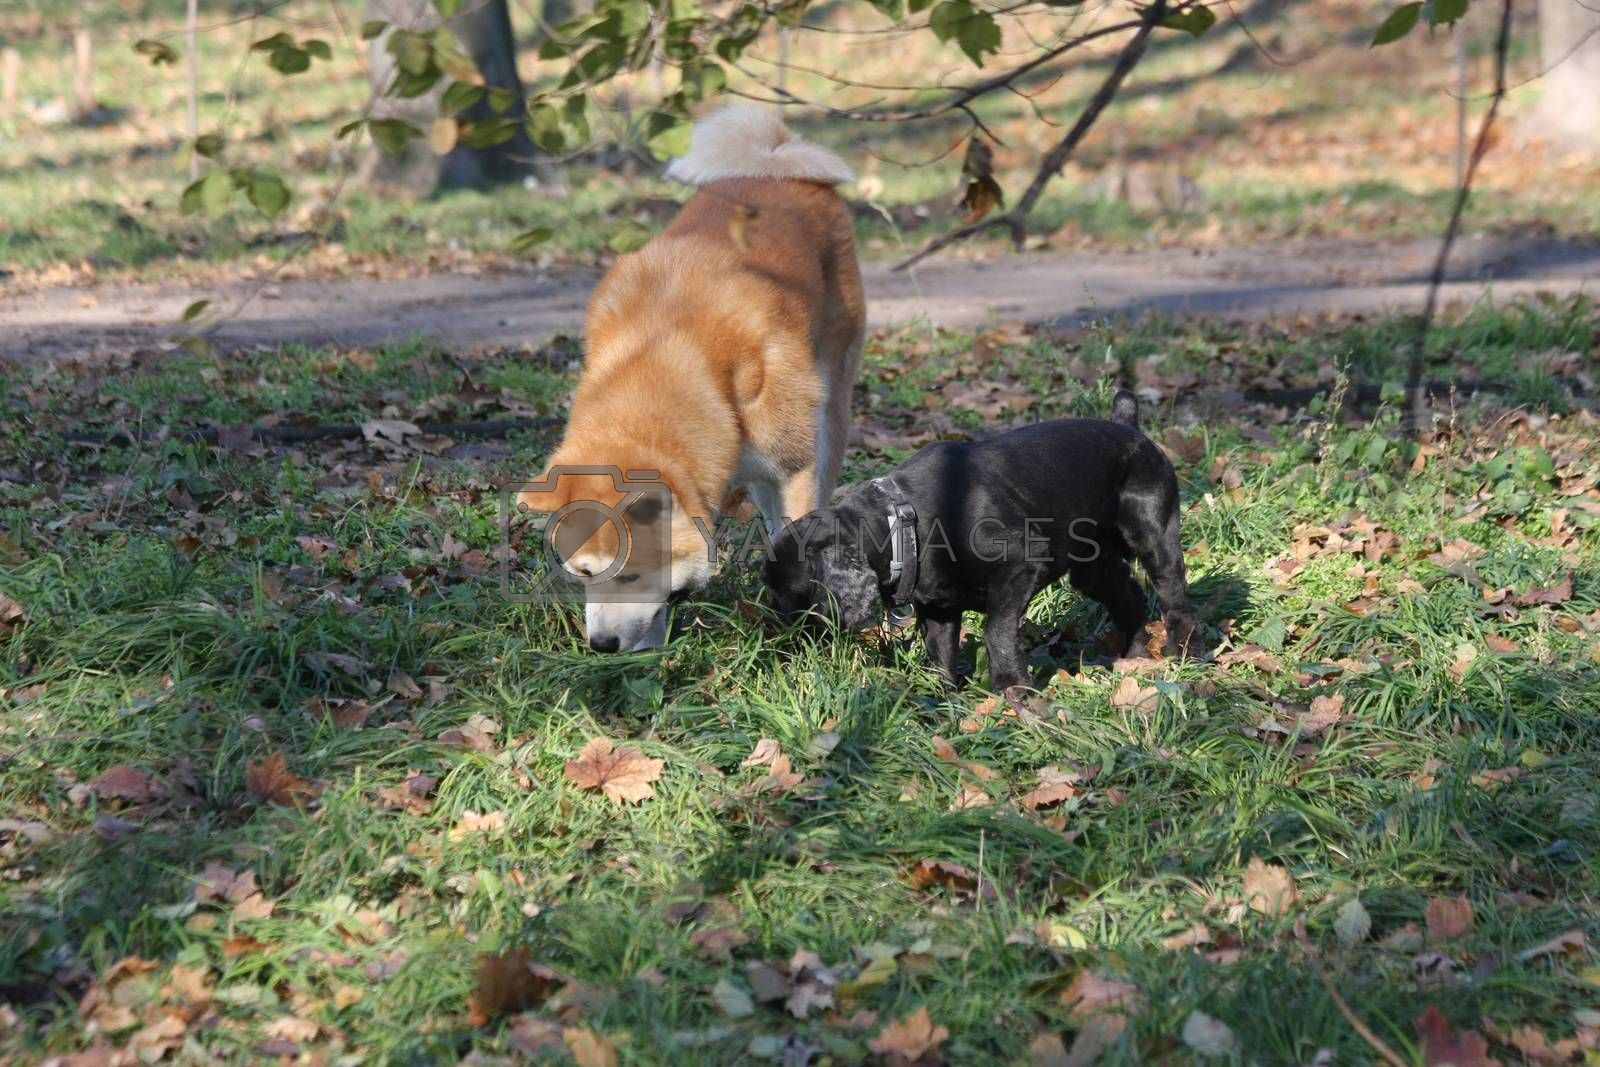 Akita Inu and Cocker Spaniel snuffling together in public park